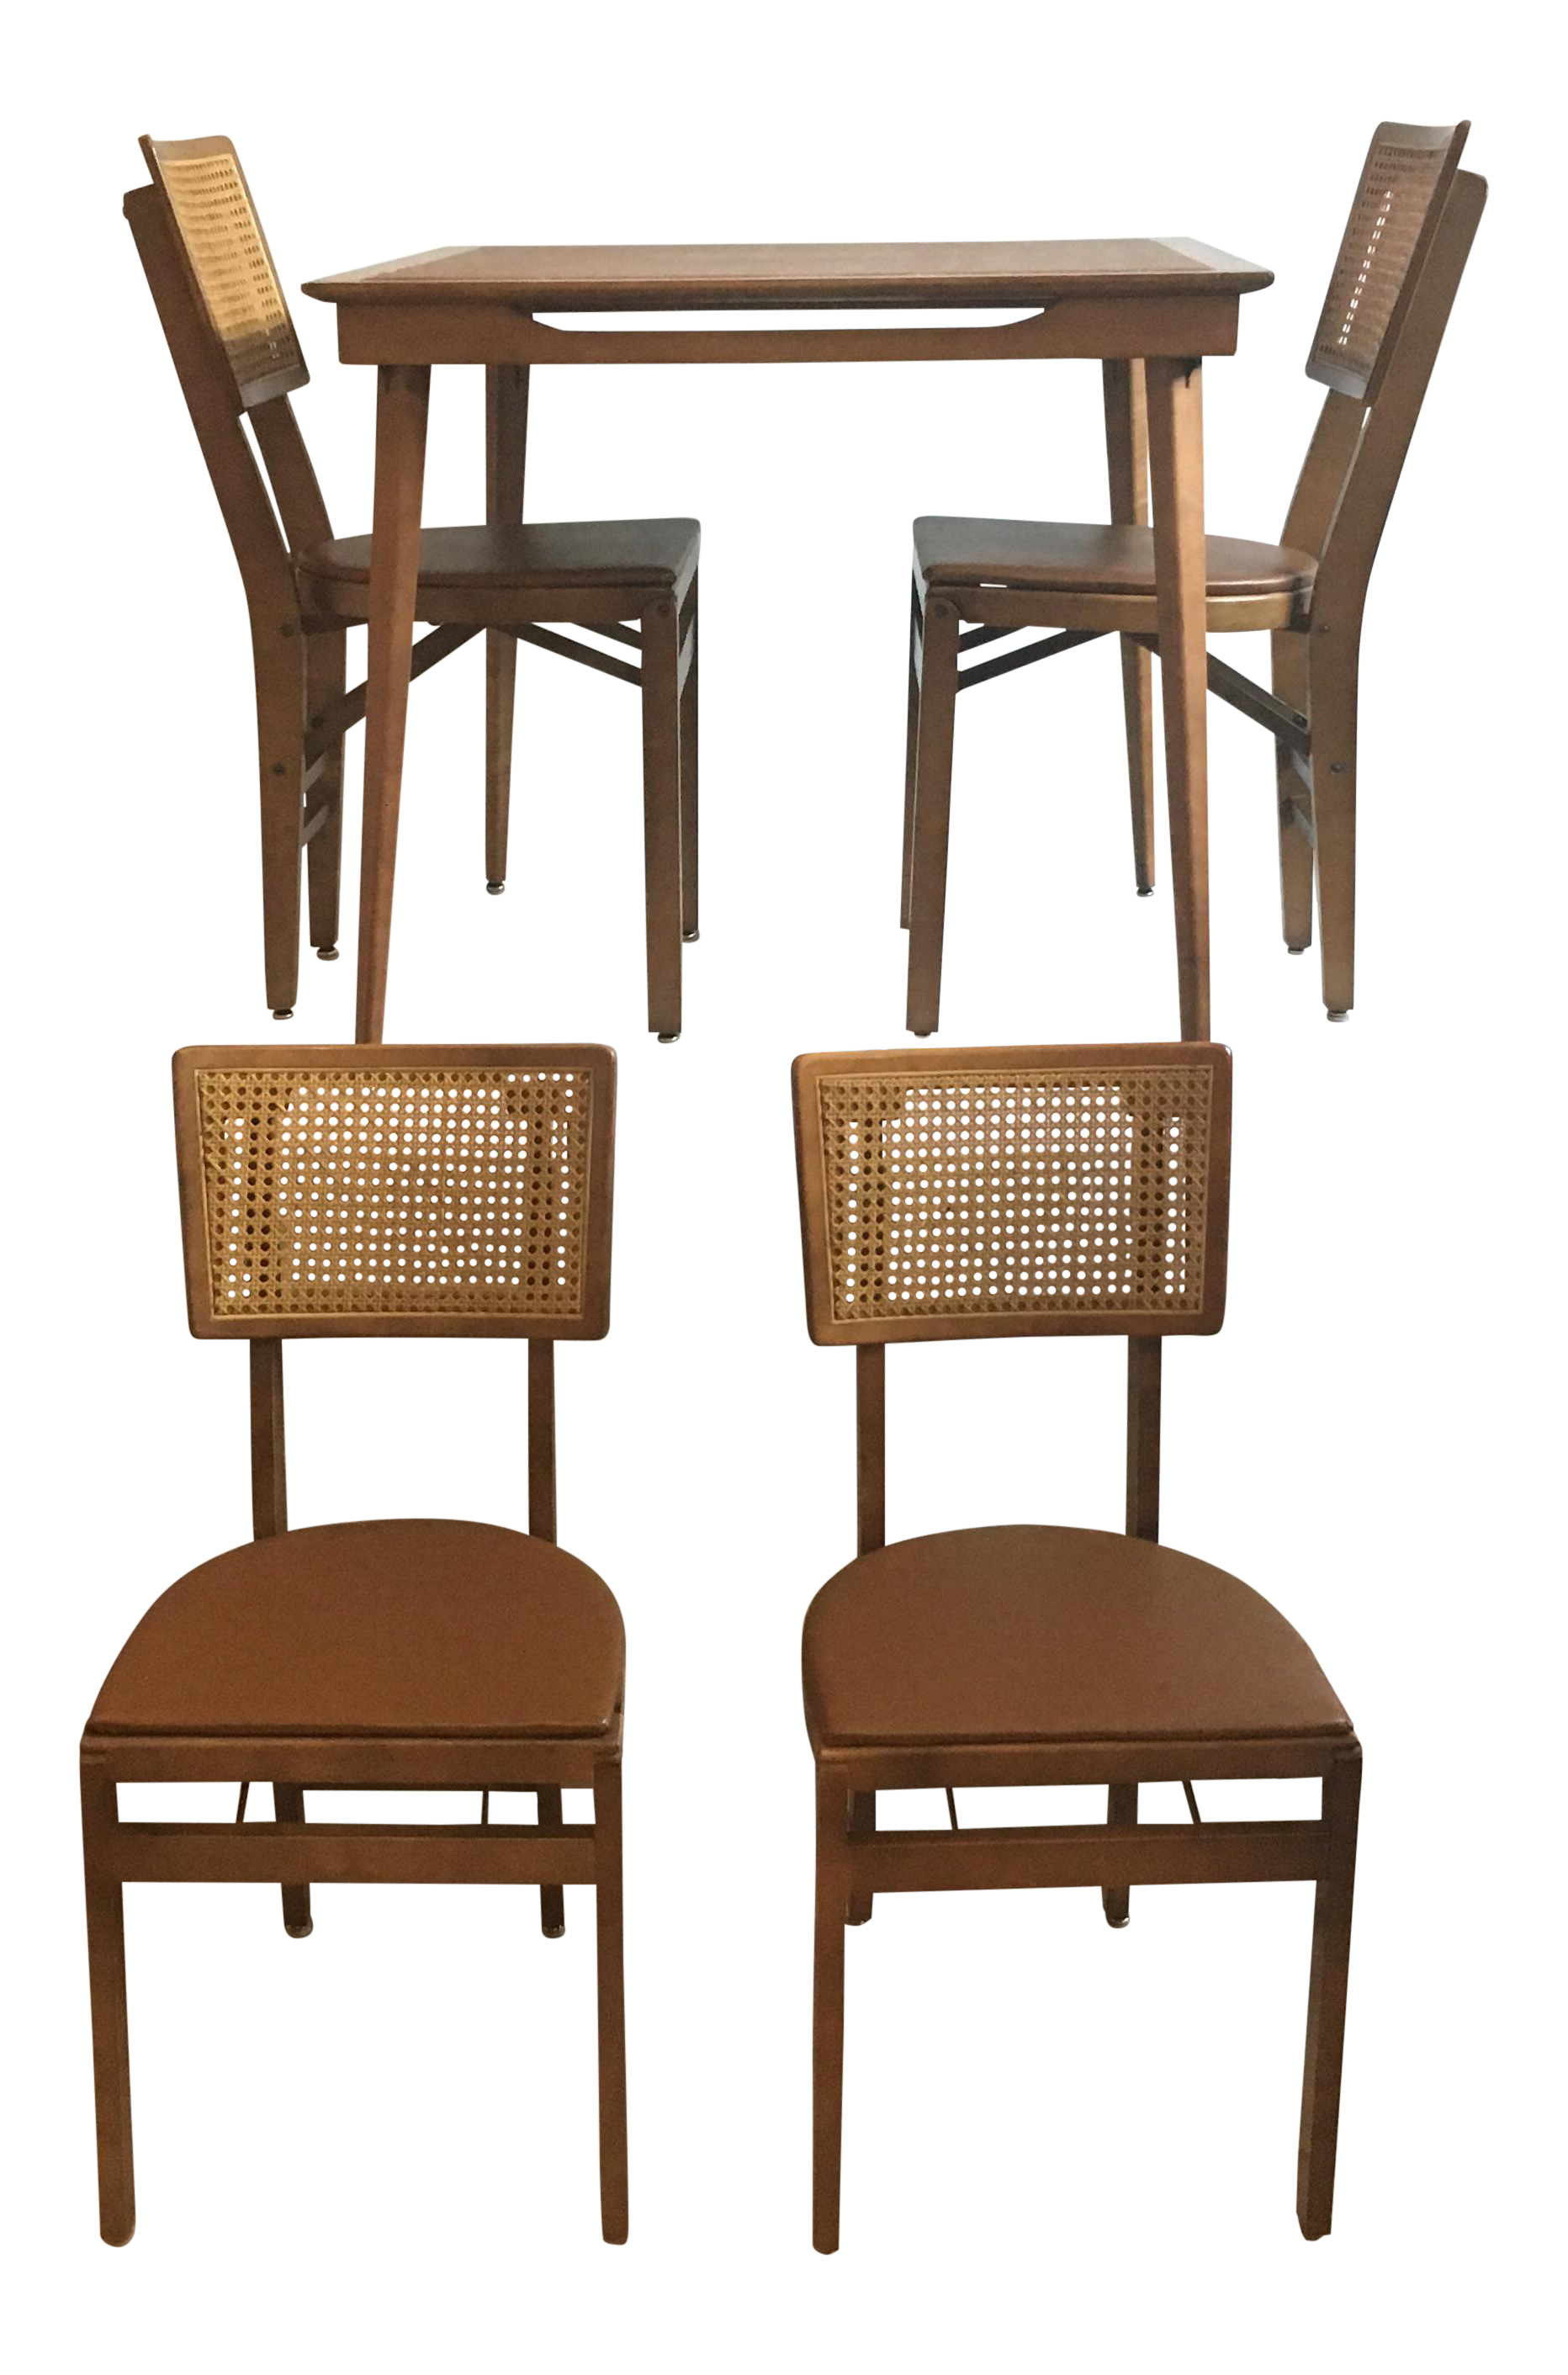 Game Table Chairs - Image of mid century folding wooden game table 4 chairs